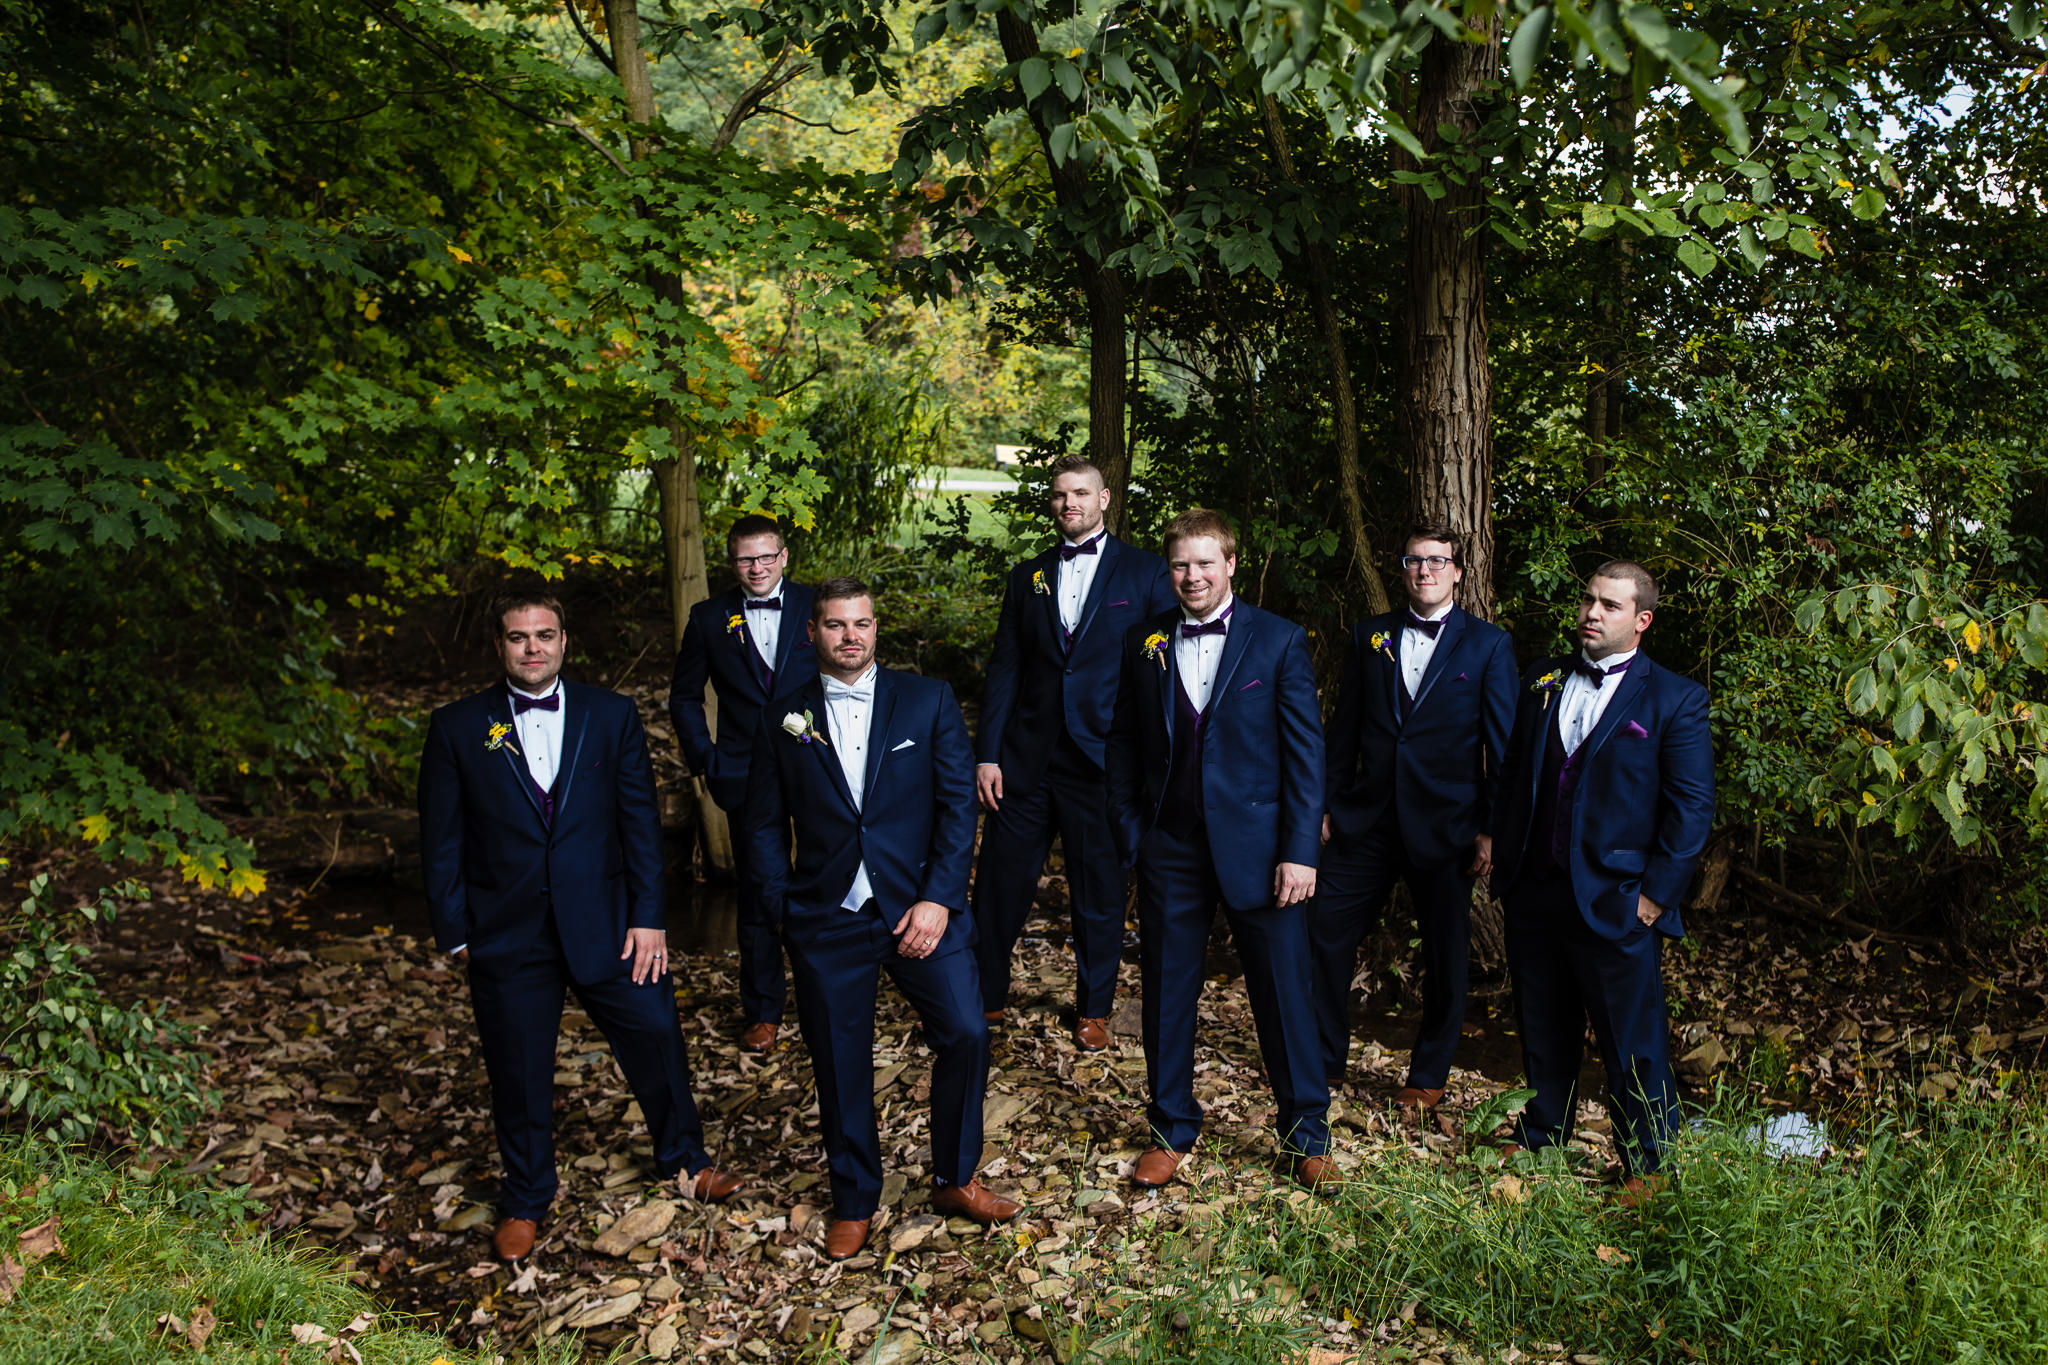 Groom and groomsmen in the woods in a Moon Township park